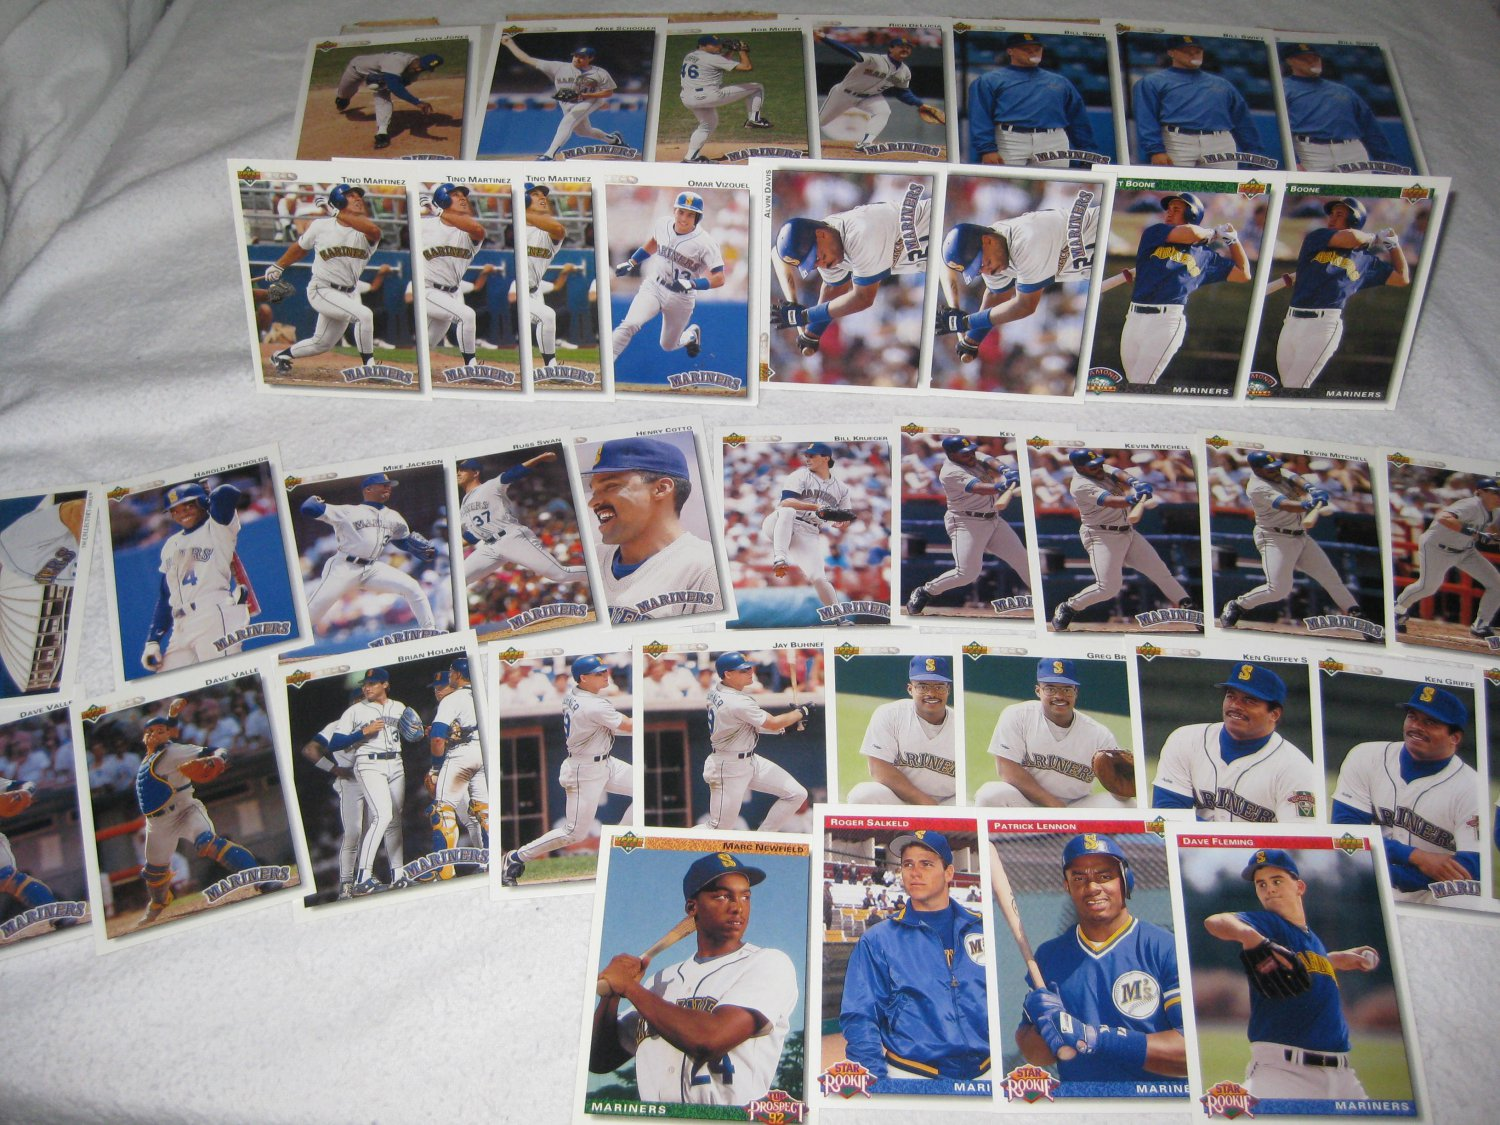 SEATTLE MARINERS 1992 UPPER DECK BASEBALL CARDS TEAM LOT FREE SHIPPING!!